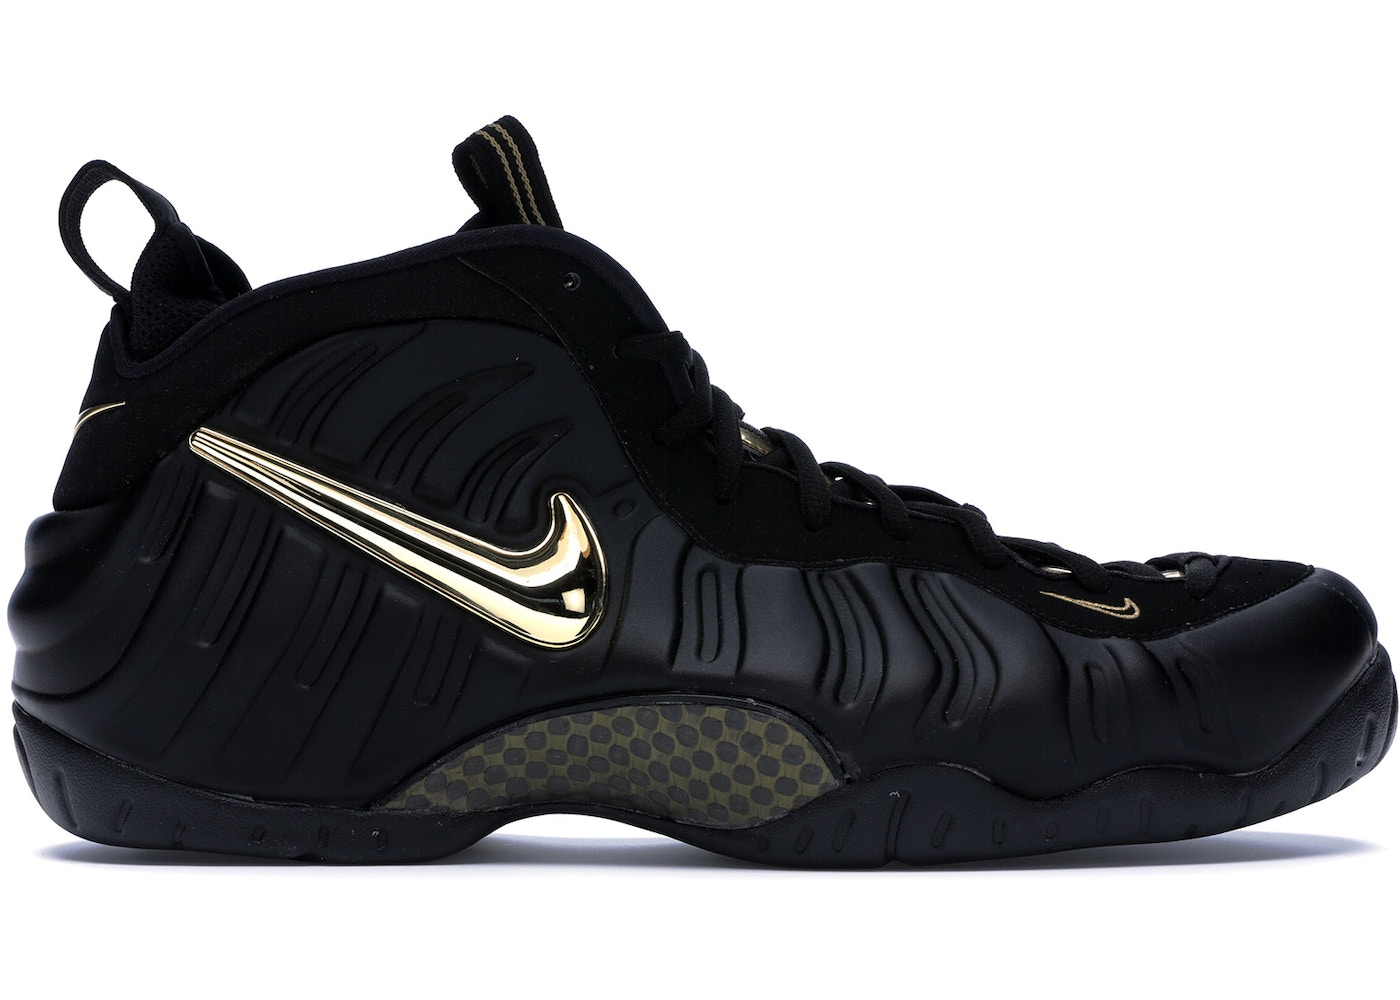 pretty nice 229a2 da01c Air Foamposite Pro Black Metallic Gold